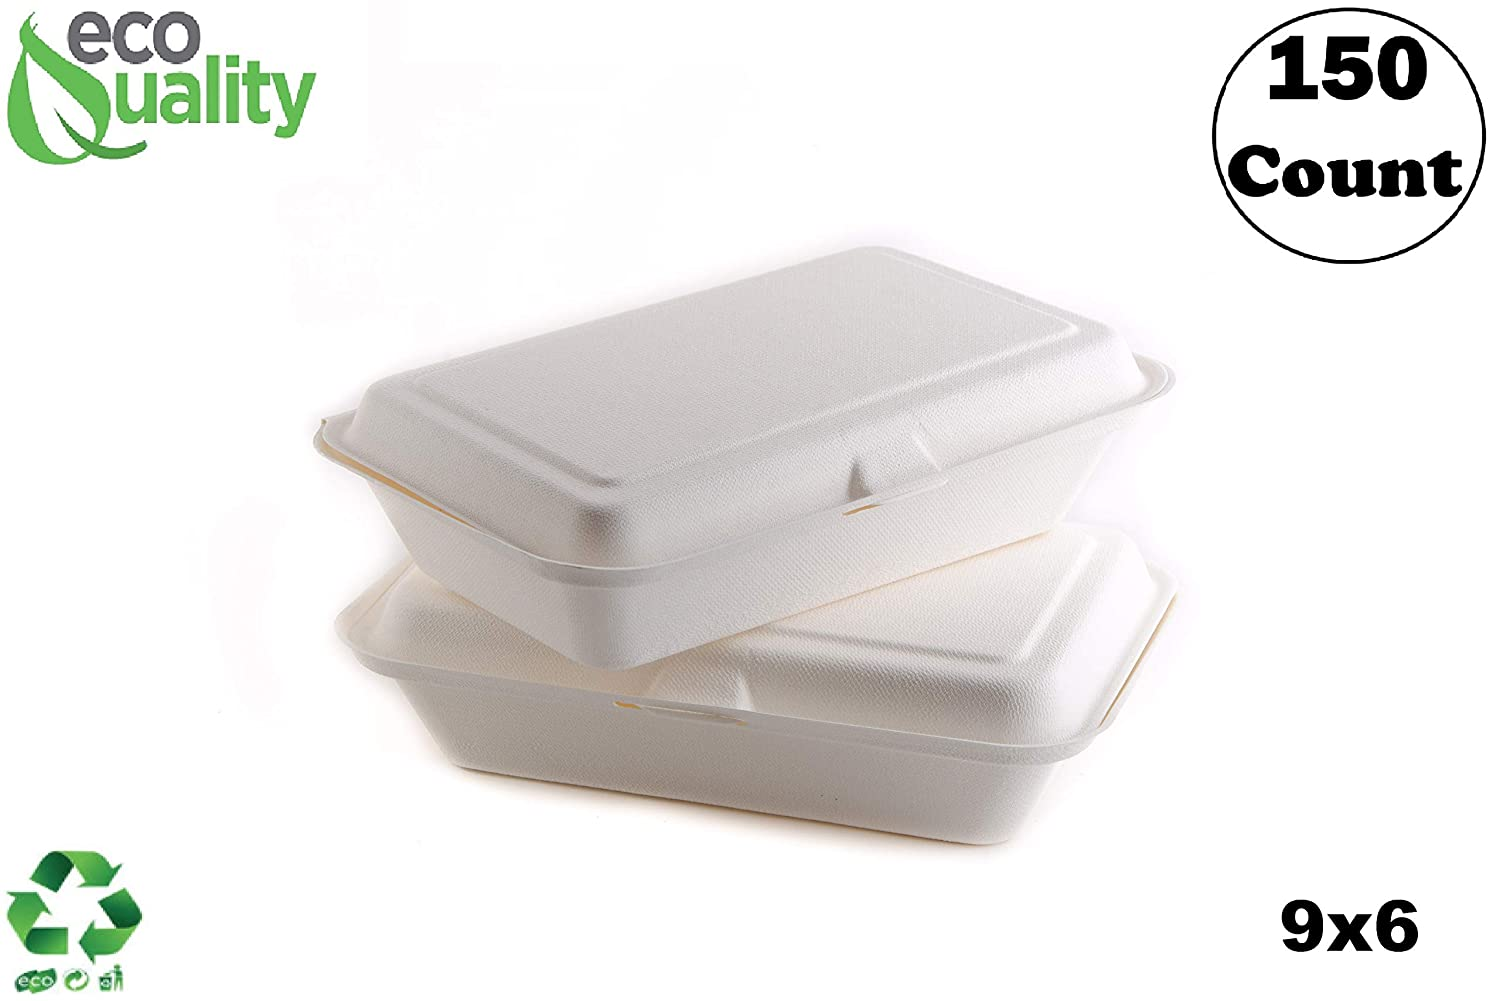 150 Count - Biodegradable 9x6 Take Out Food Containers with Clamshell Hinged Lid - Eco Friendly Sugarcane Bagasse 100% Compostable, Recyclable, Togo, Restaurant Carry Out, Party Take Home Boxes